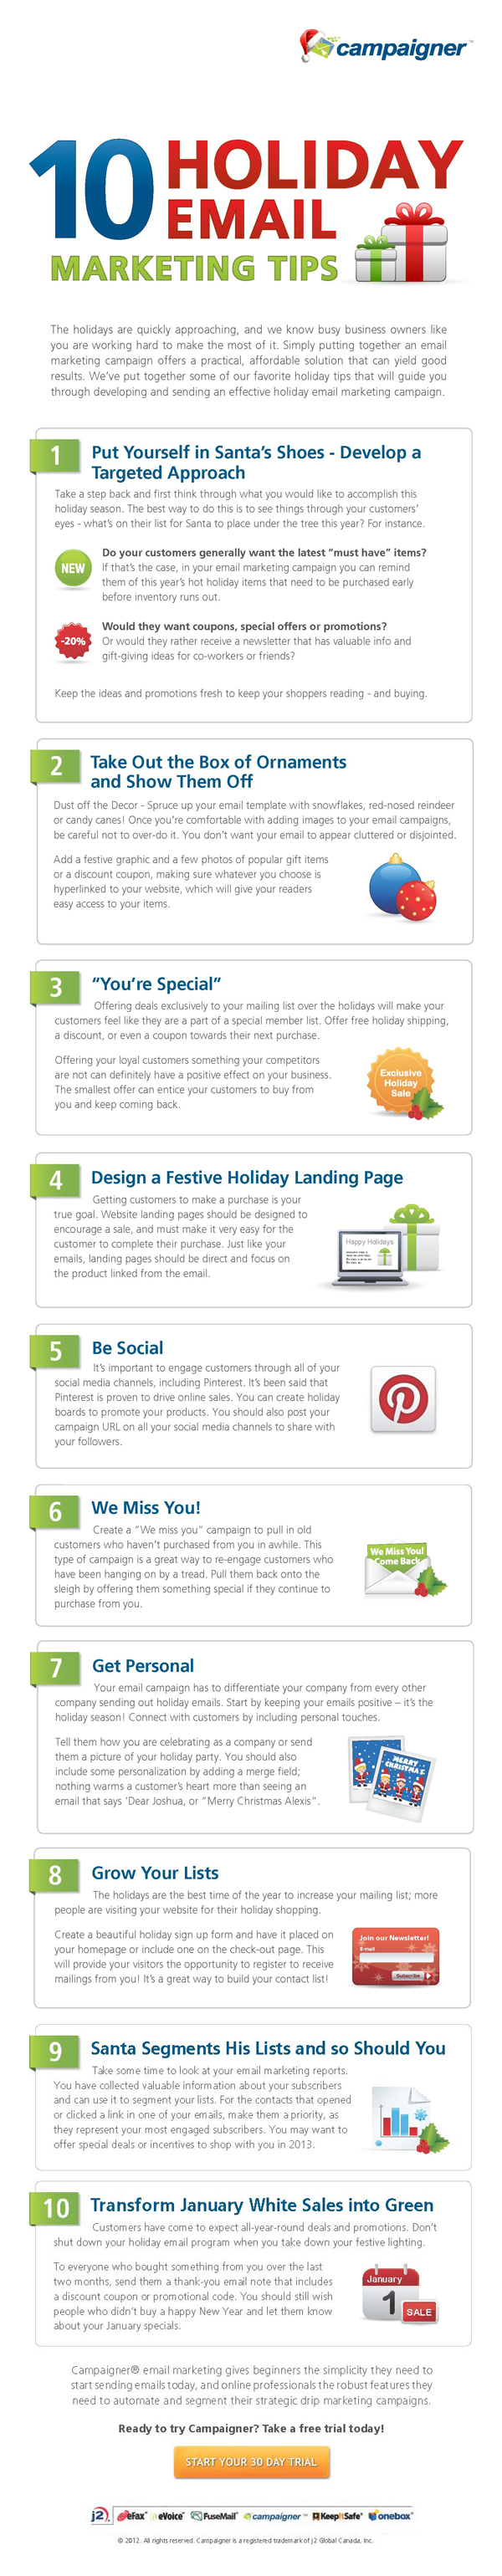 Holiday-Email-Marketing-Tips